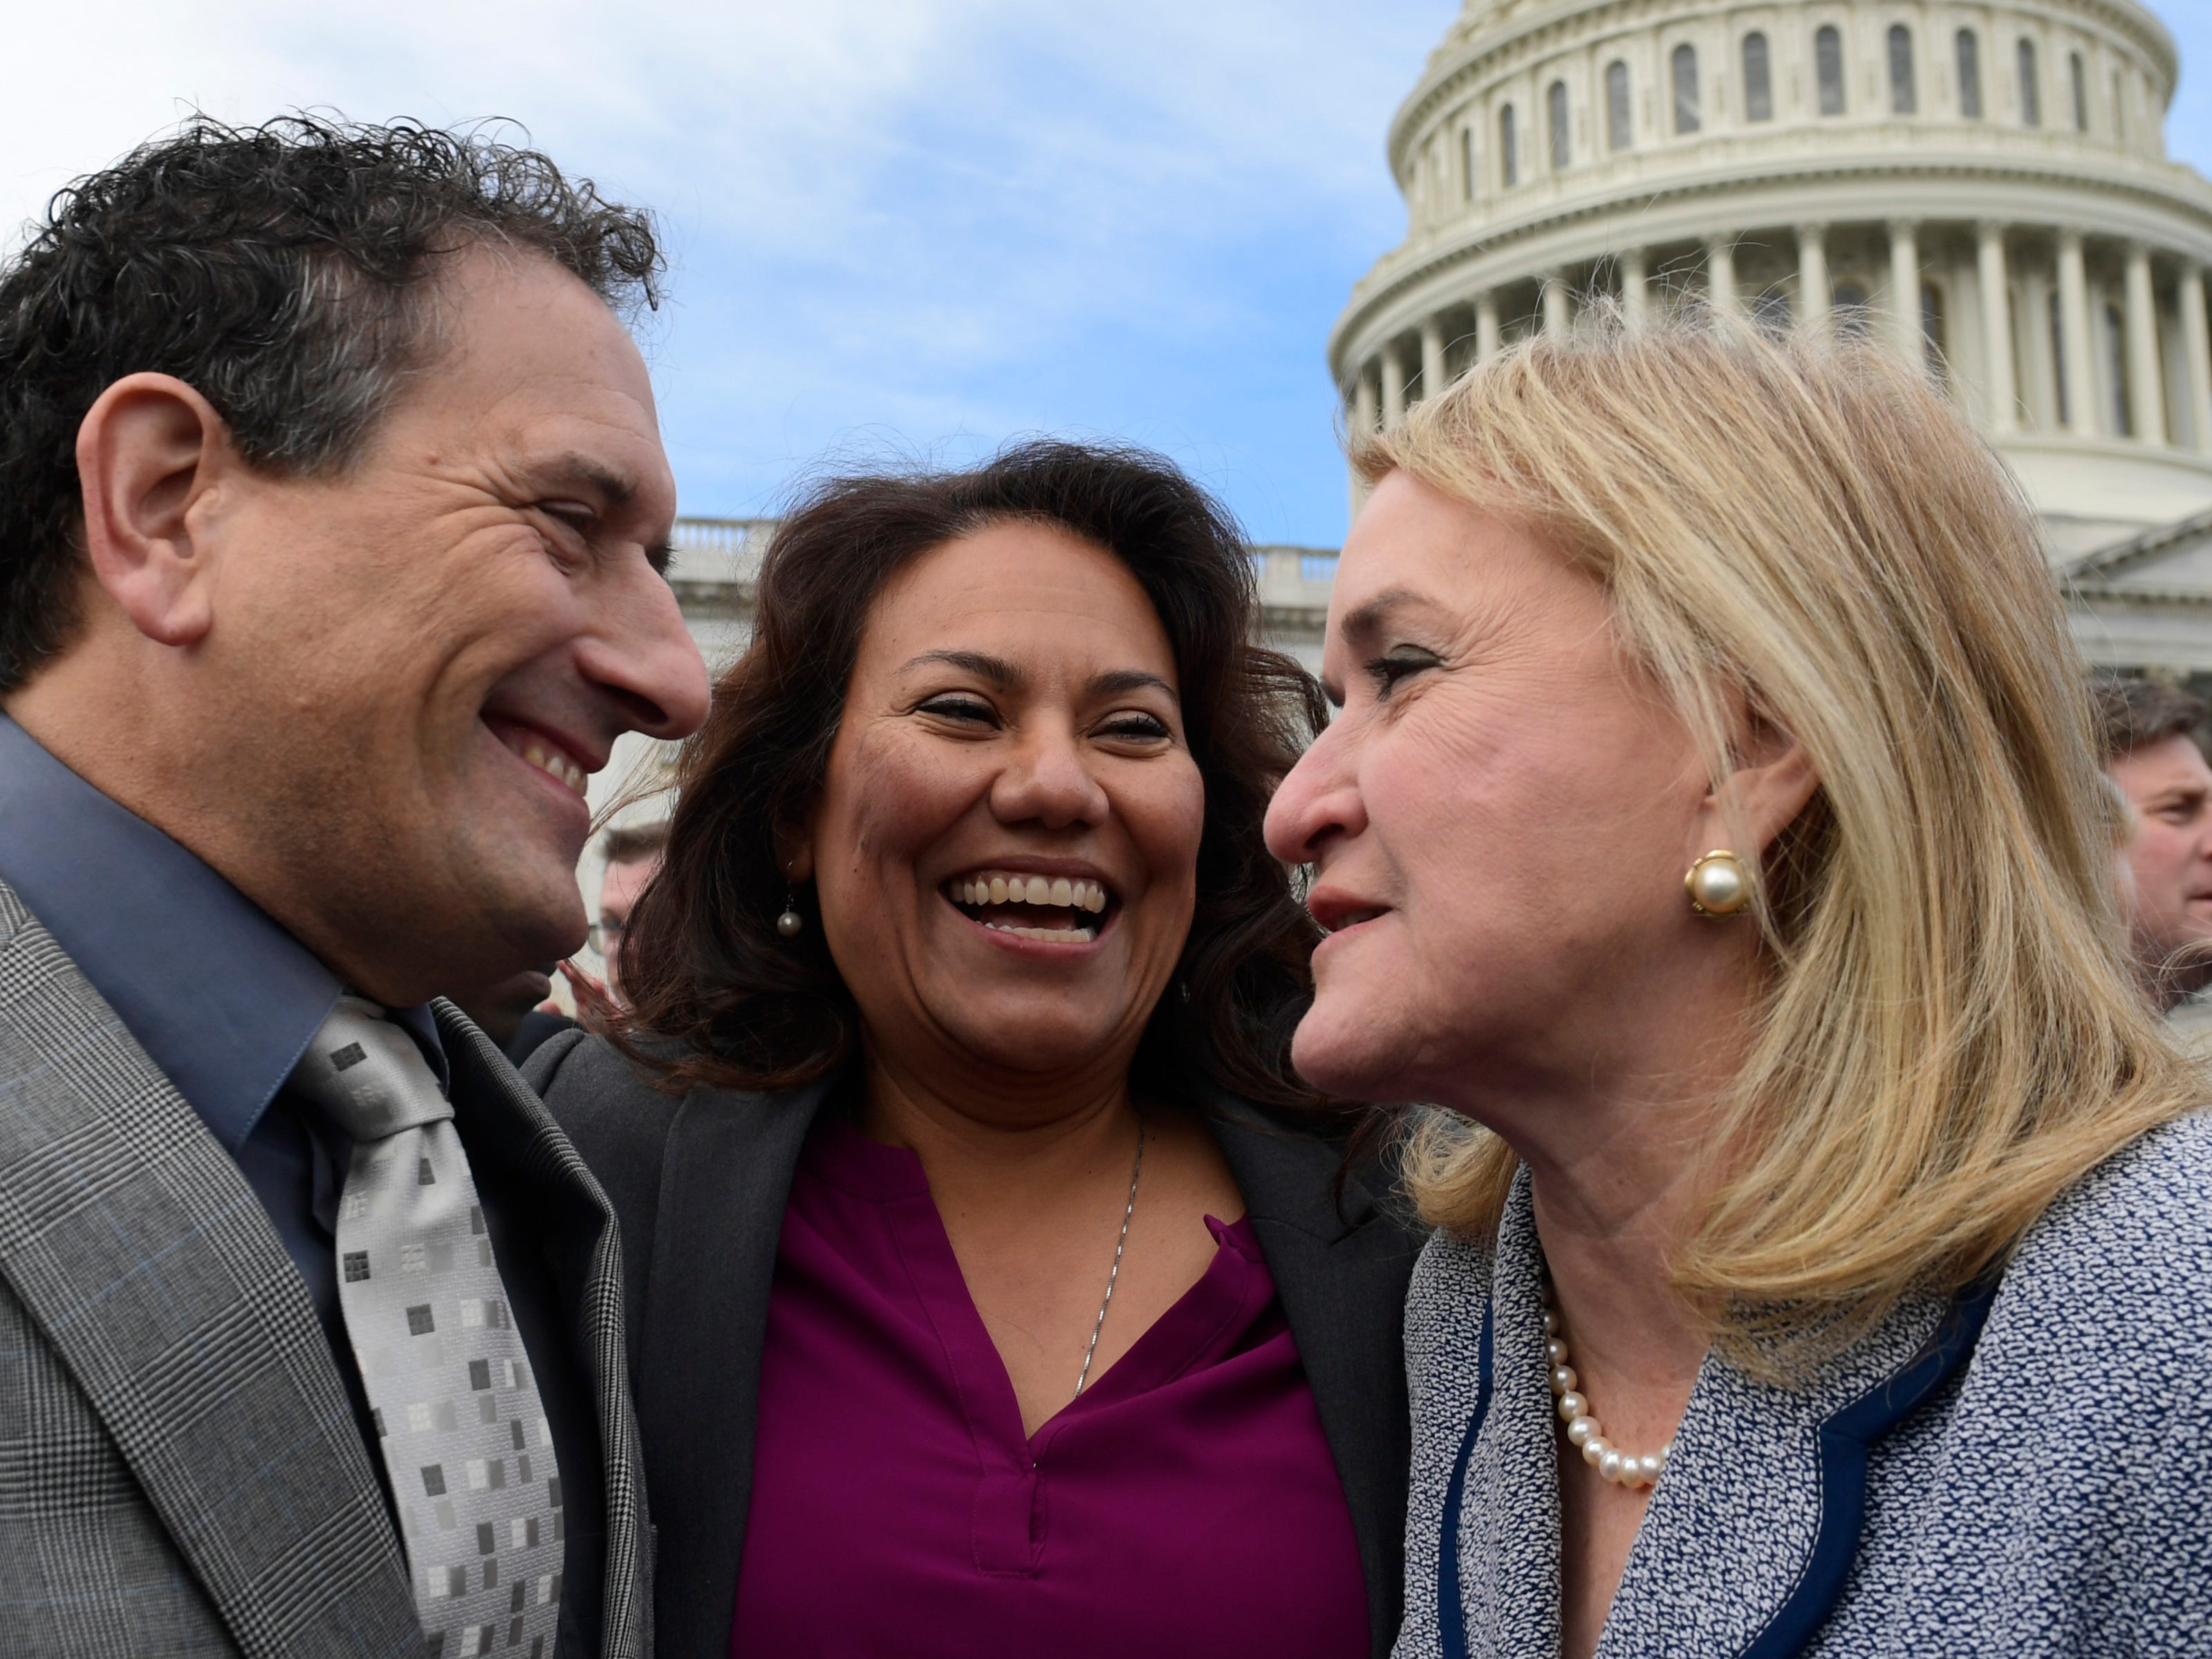 Rep.-elect Andy Levin, D-Mich., left,  Rep.-elect Veronica Escobar, D-Texas, center, and Rep.-elect Sylvia Garcia, D-Texas, right, talk following a photo opportunity on Capitol Hill in Washington, Wednesday, Nov. 14, 2018, for the freshman class.